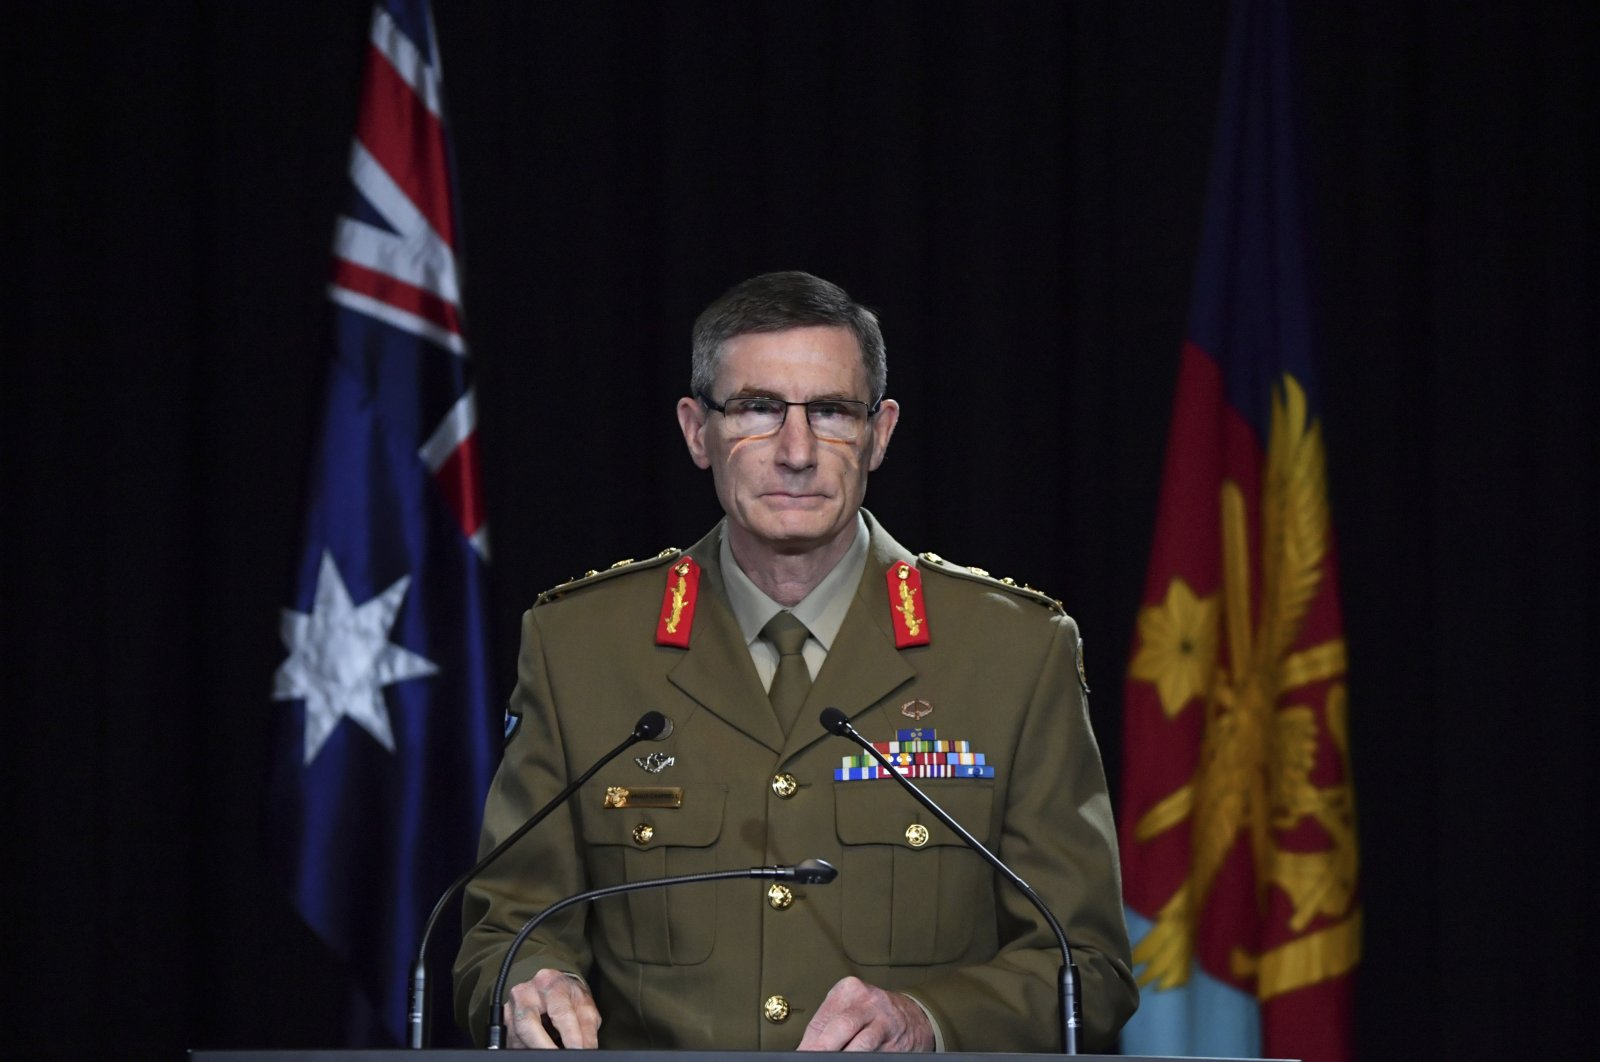 Chief of the Australian Defense Force Gen. Angus Campbell delivers the findings from the Inspector-General of the Australian Defense Force Afghanistan Inquiry, Canberra, Nov. 19, 2020. (AP Photo)